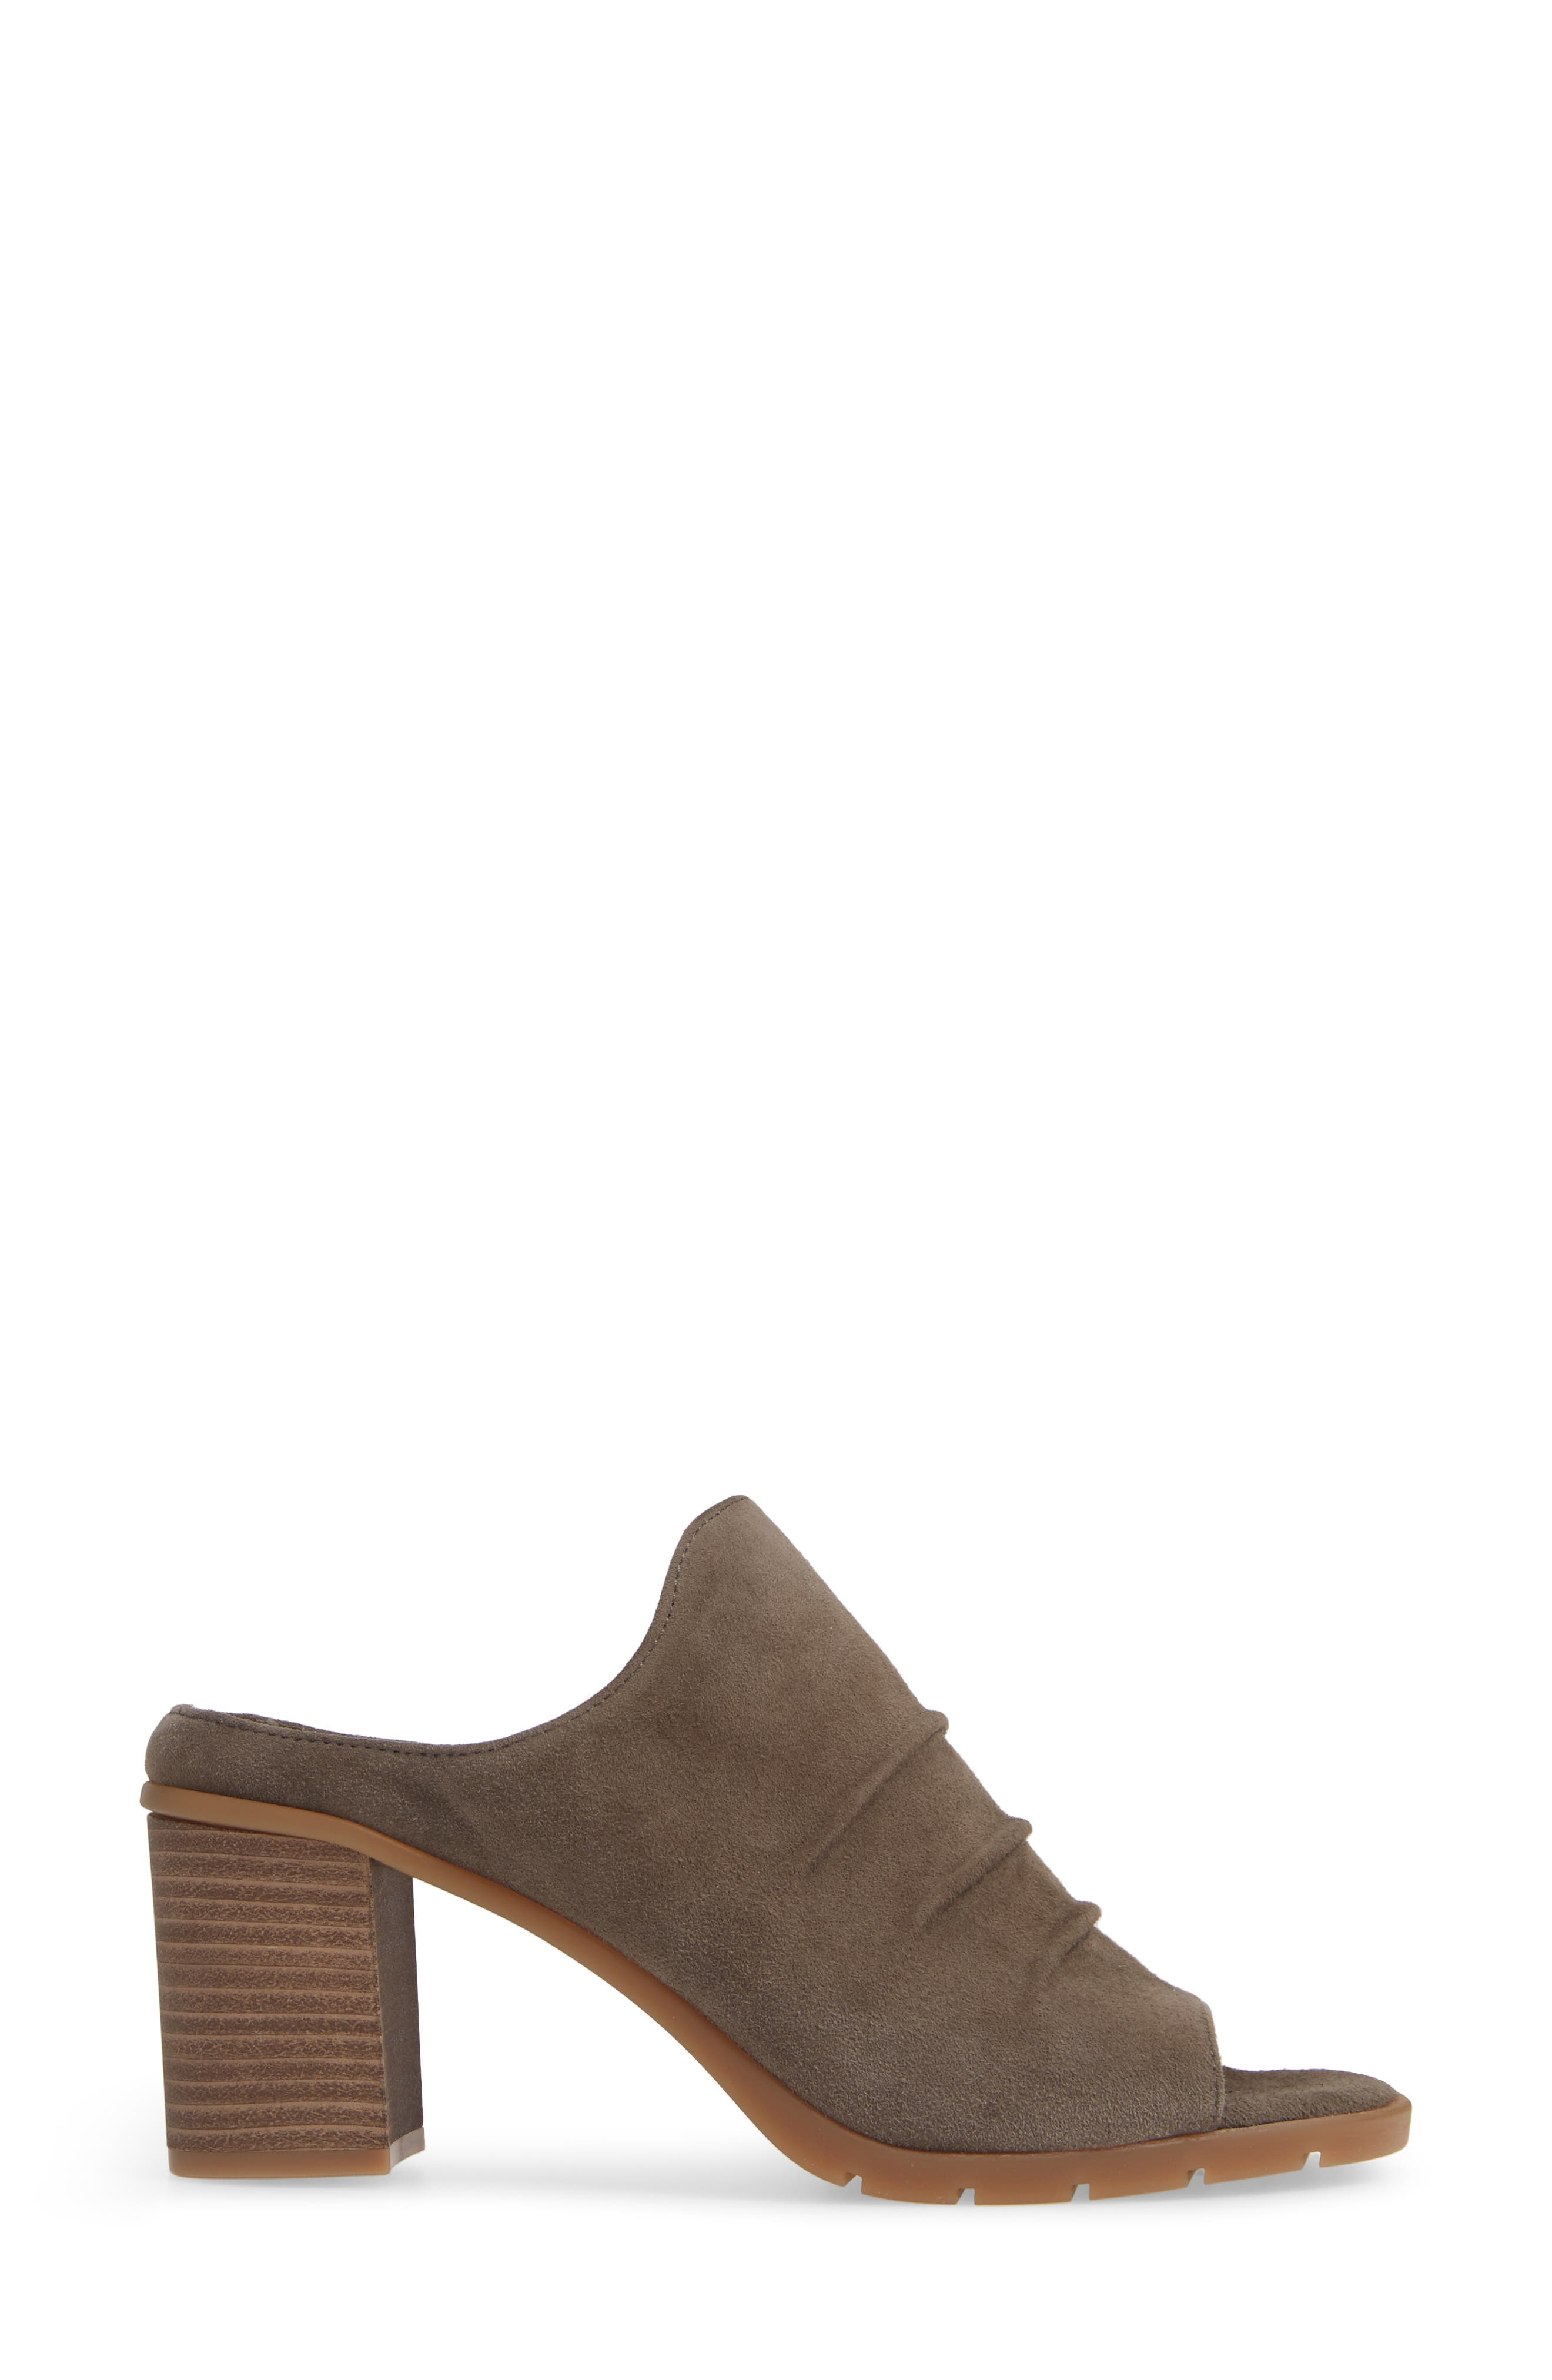 Aim to Pleat Mule,                             Alternate thumbnail 3, color,                             BROWN LEATHER